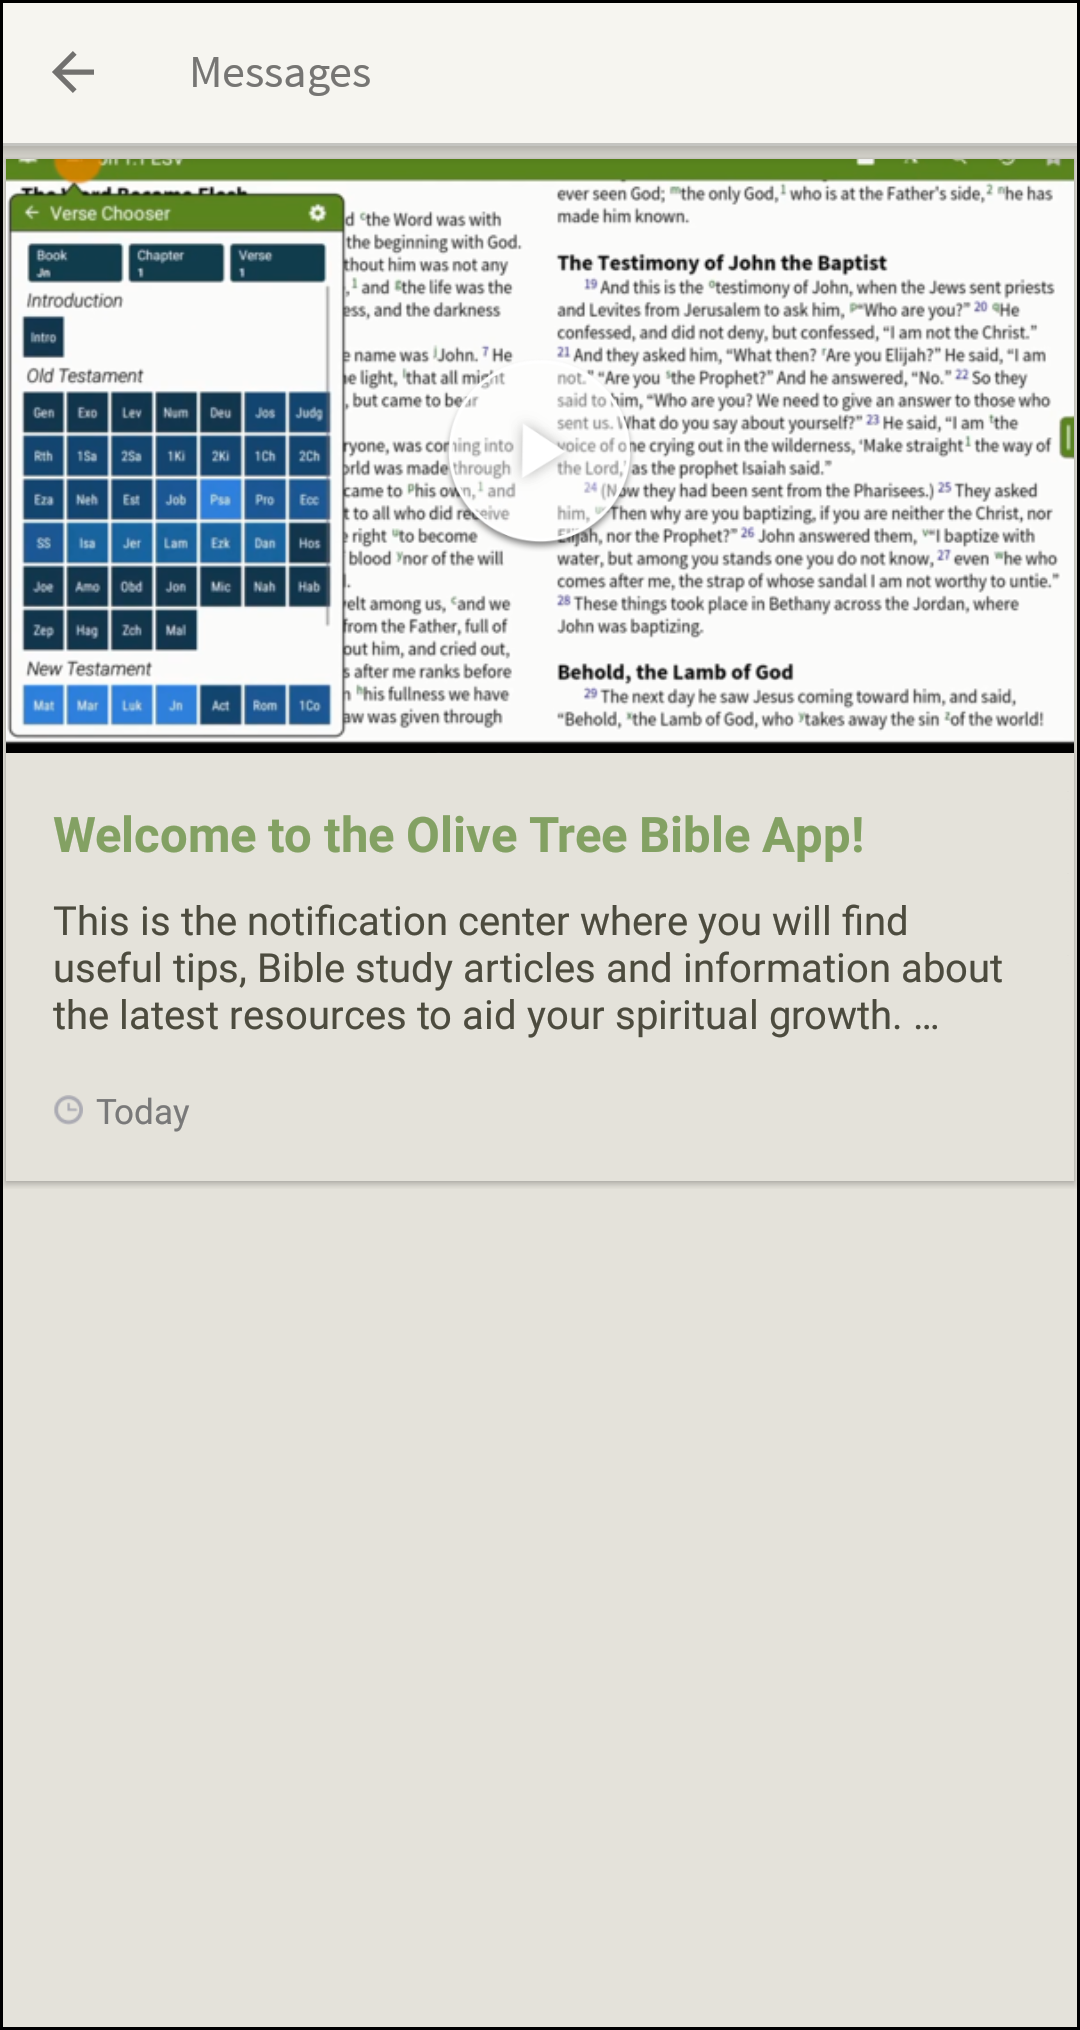 7 0 Android Phone - Messages/Notifications – Olive Tree